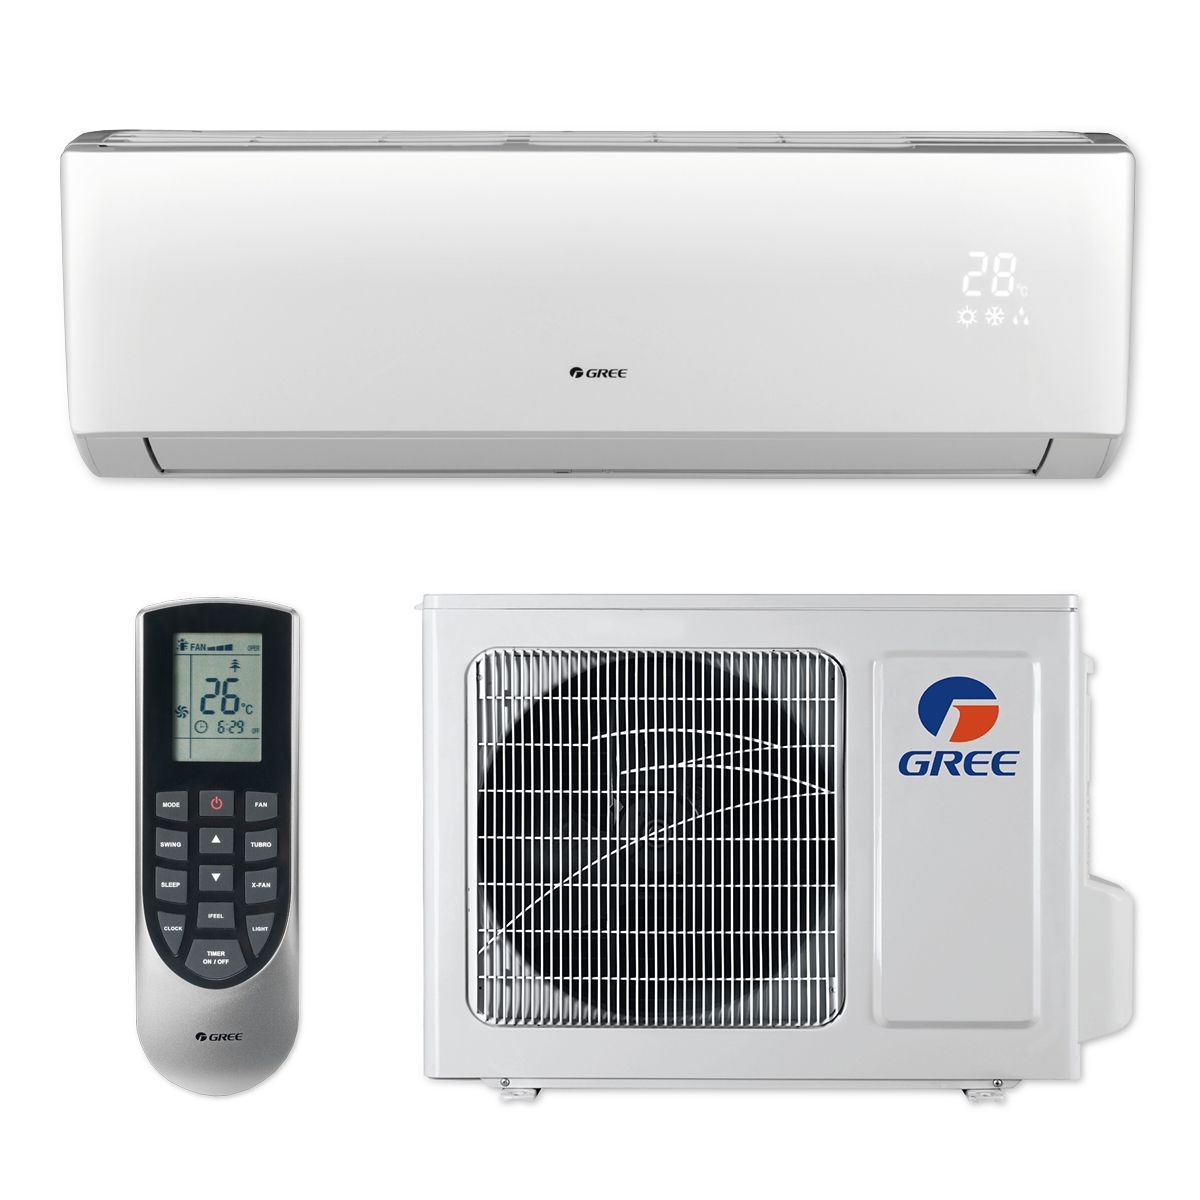 Gree 9 000 Btu 23 Seer Vireo Wall Mount Ductless Mini Split Air Conditioner Heat Pump 115v Ductless Mini Split Ductless Heat Pump